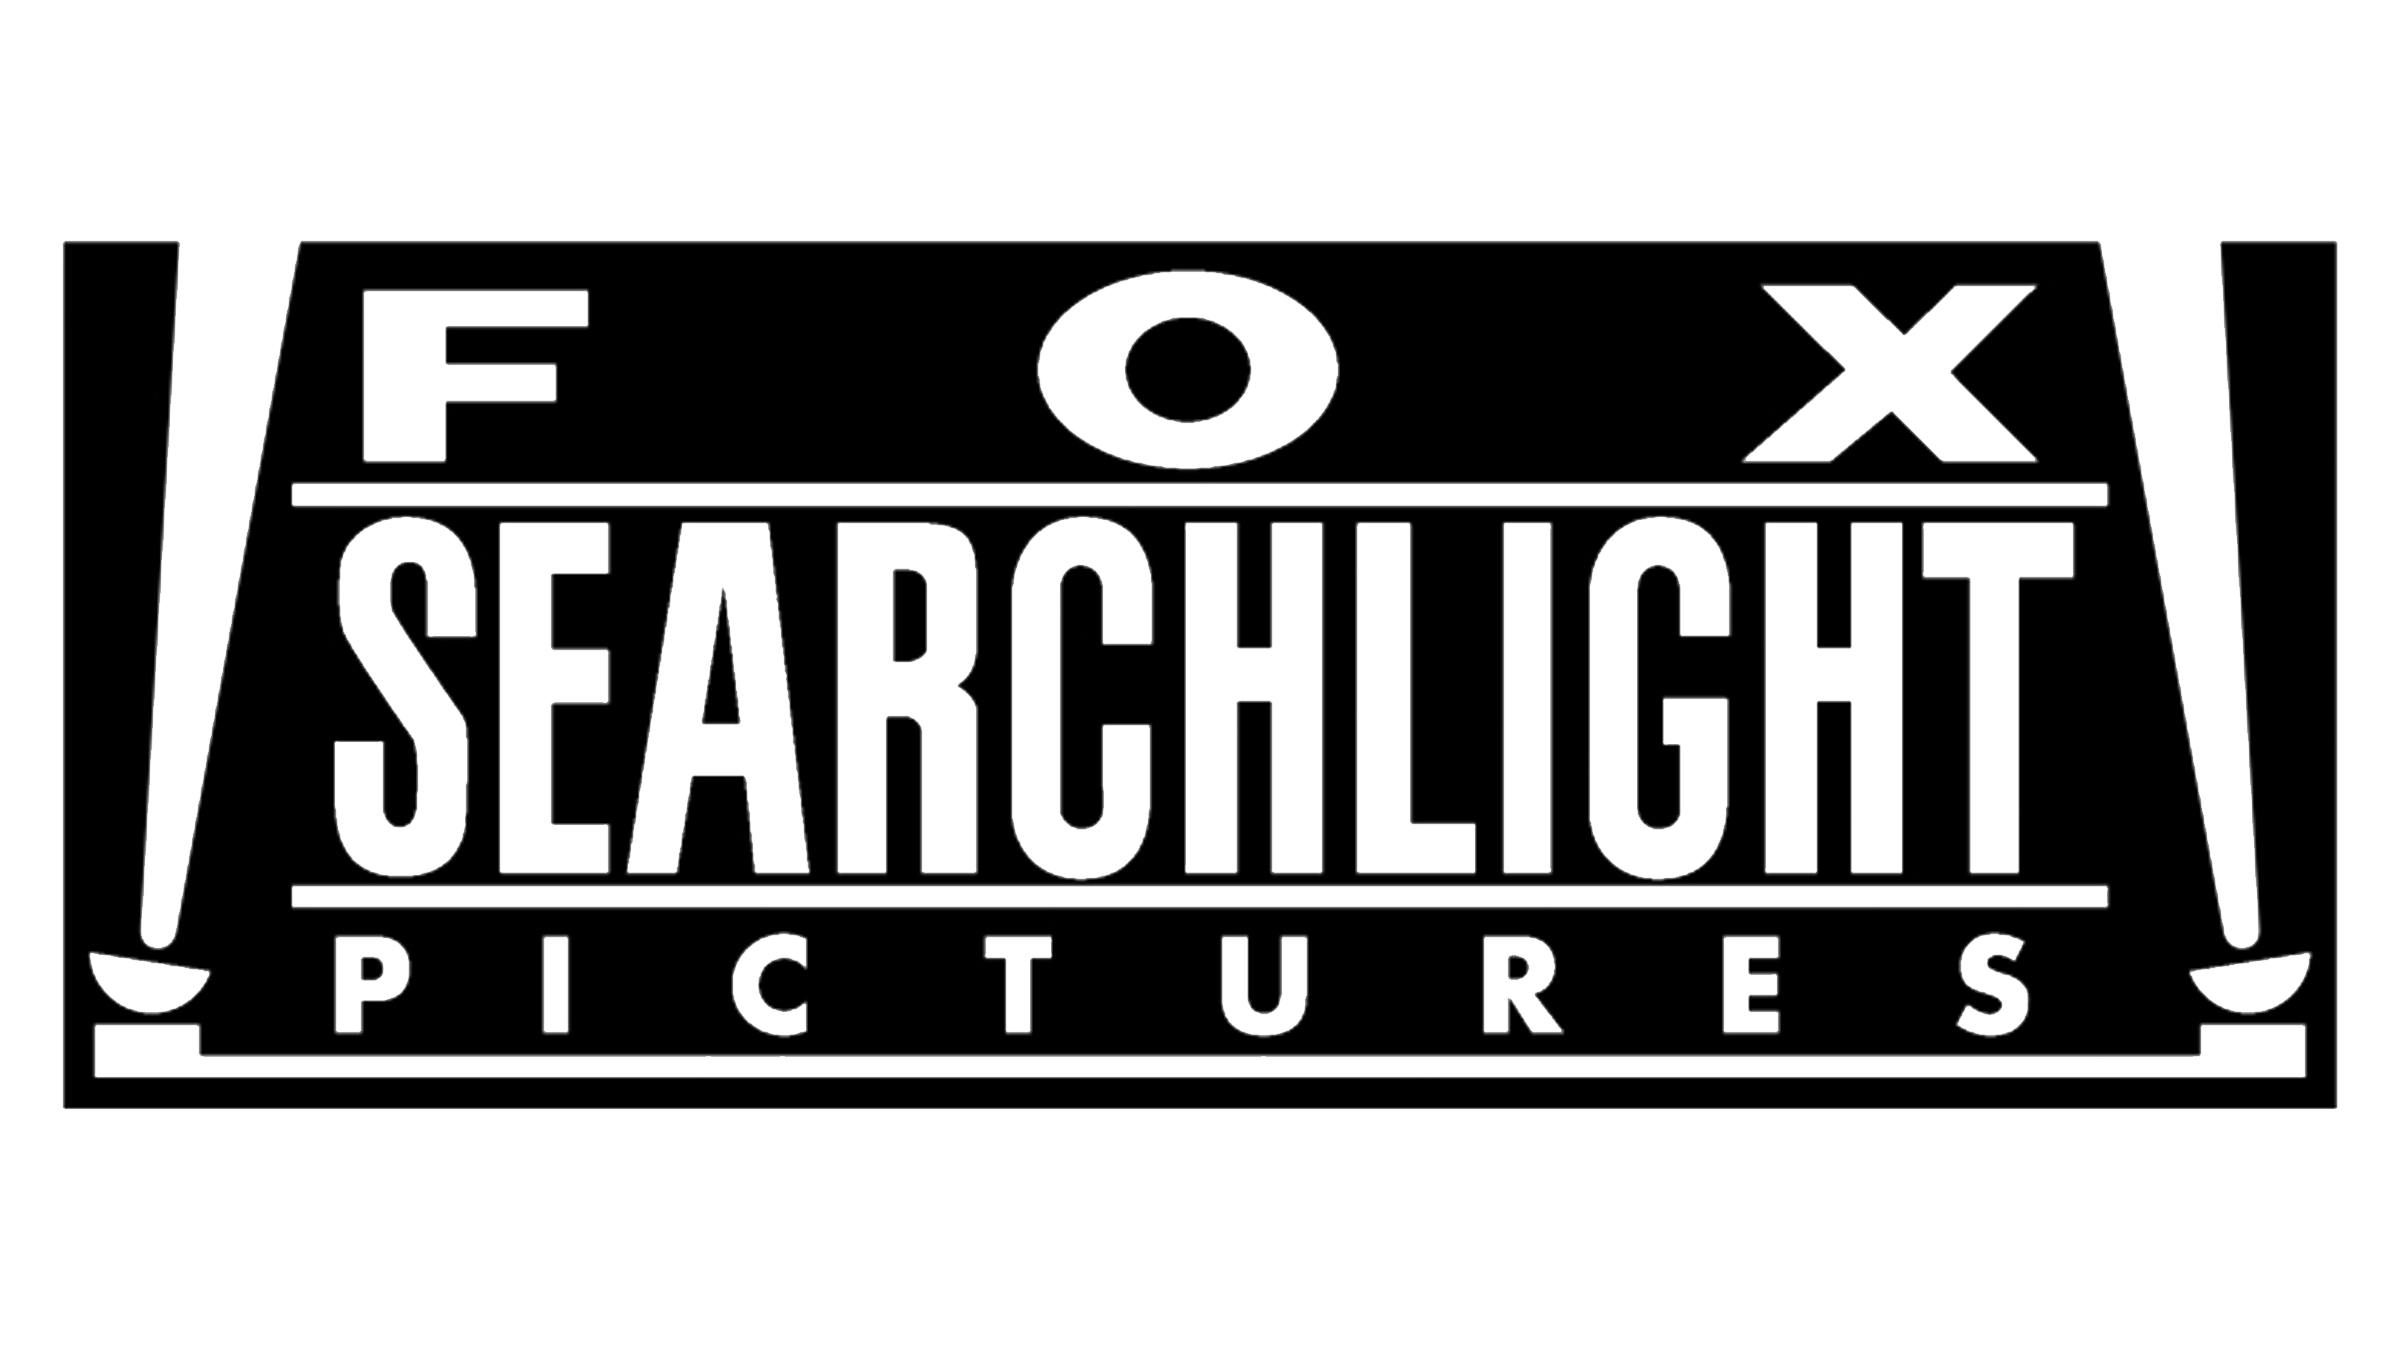 Fox-Searchlight-logo.jpg